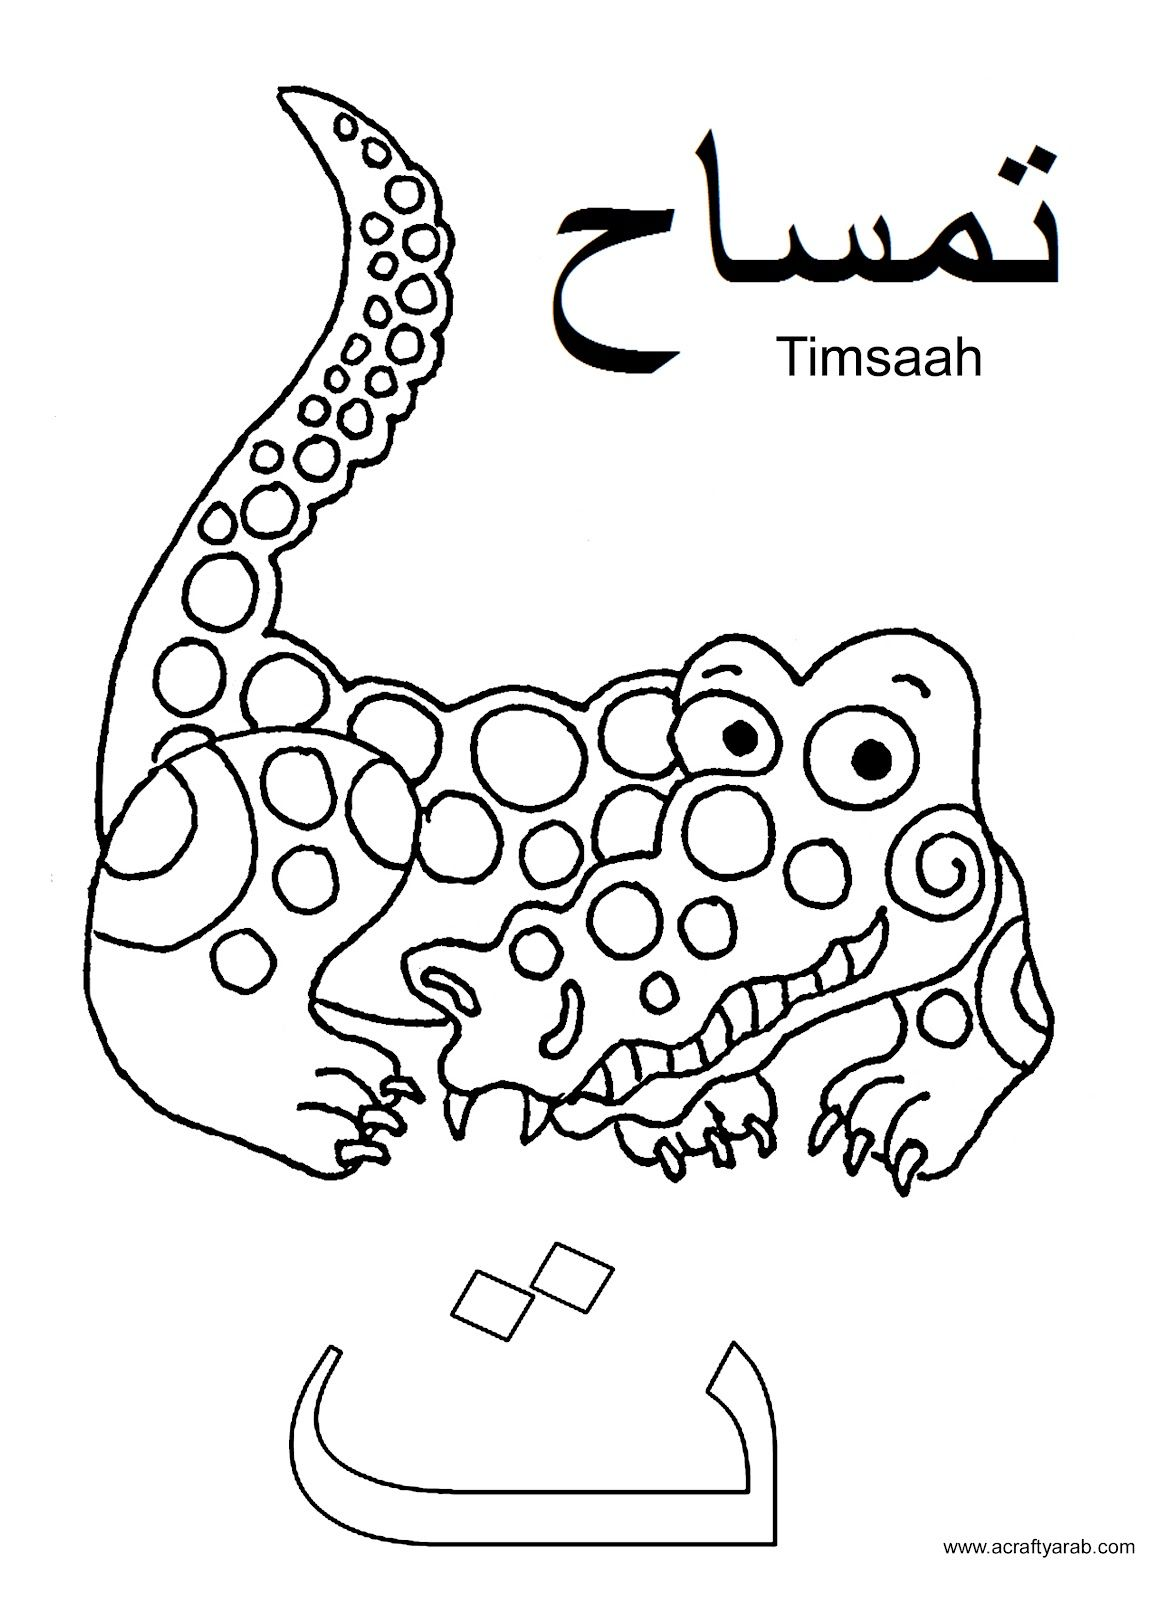 Alphabet i coloring pages - Printable Pages Of The Arabic Alphabet To Color